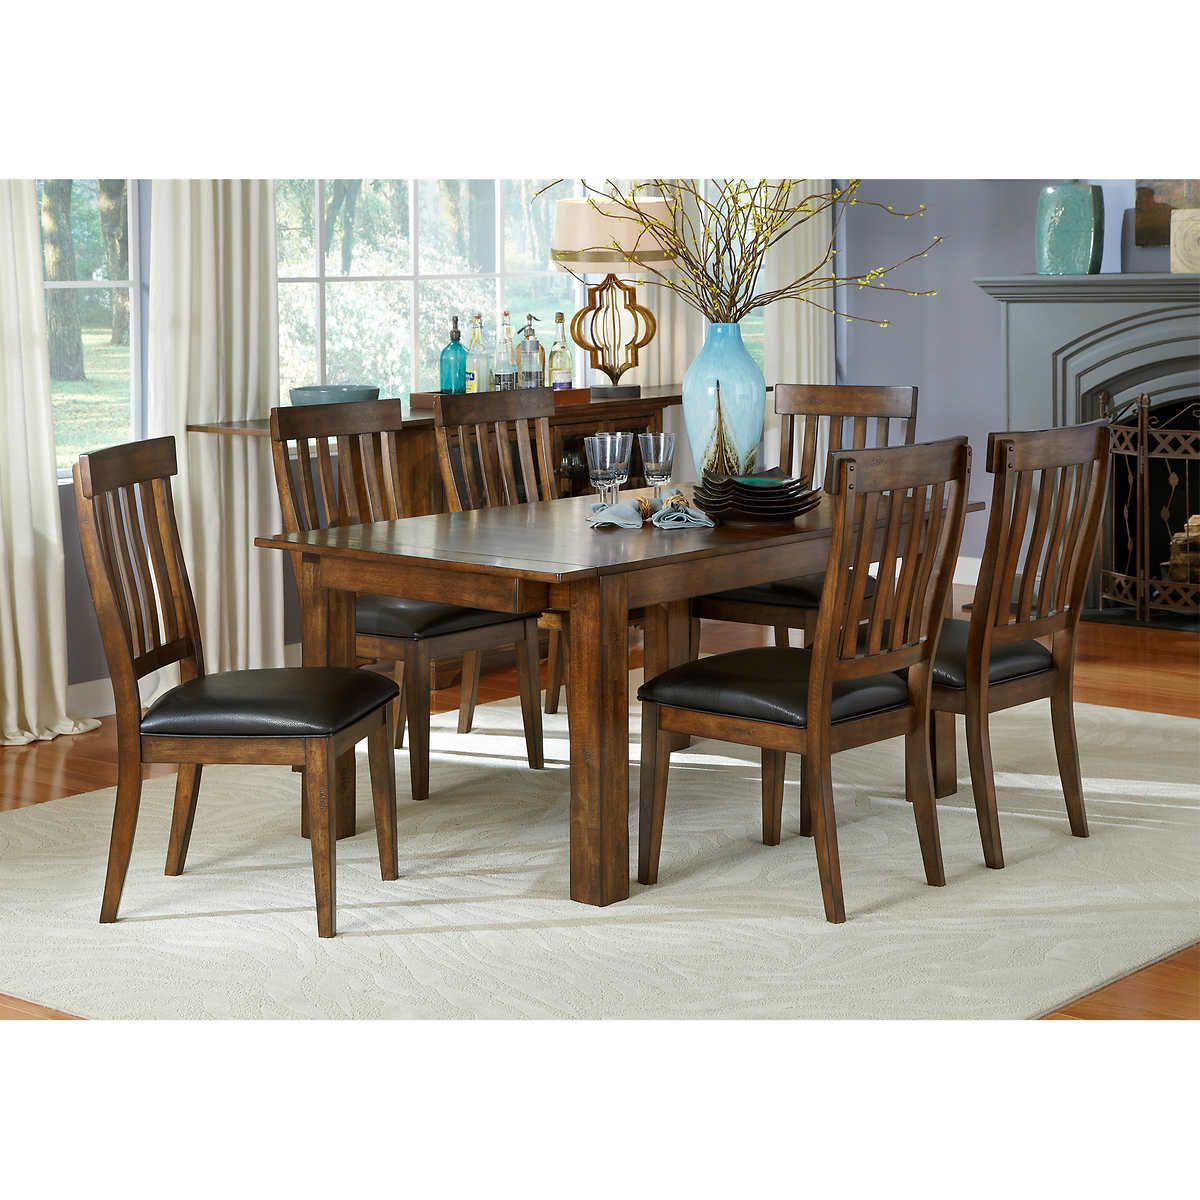 Medina 8Piece Dining Set Table Chairs Server  Costco Beauteous Dining Room Sets Costco Design Decoration